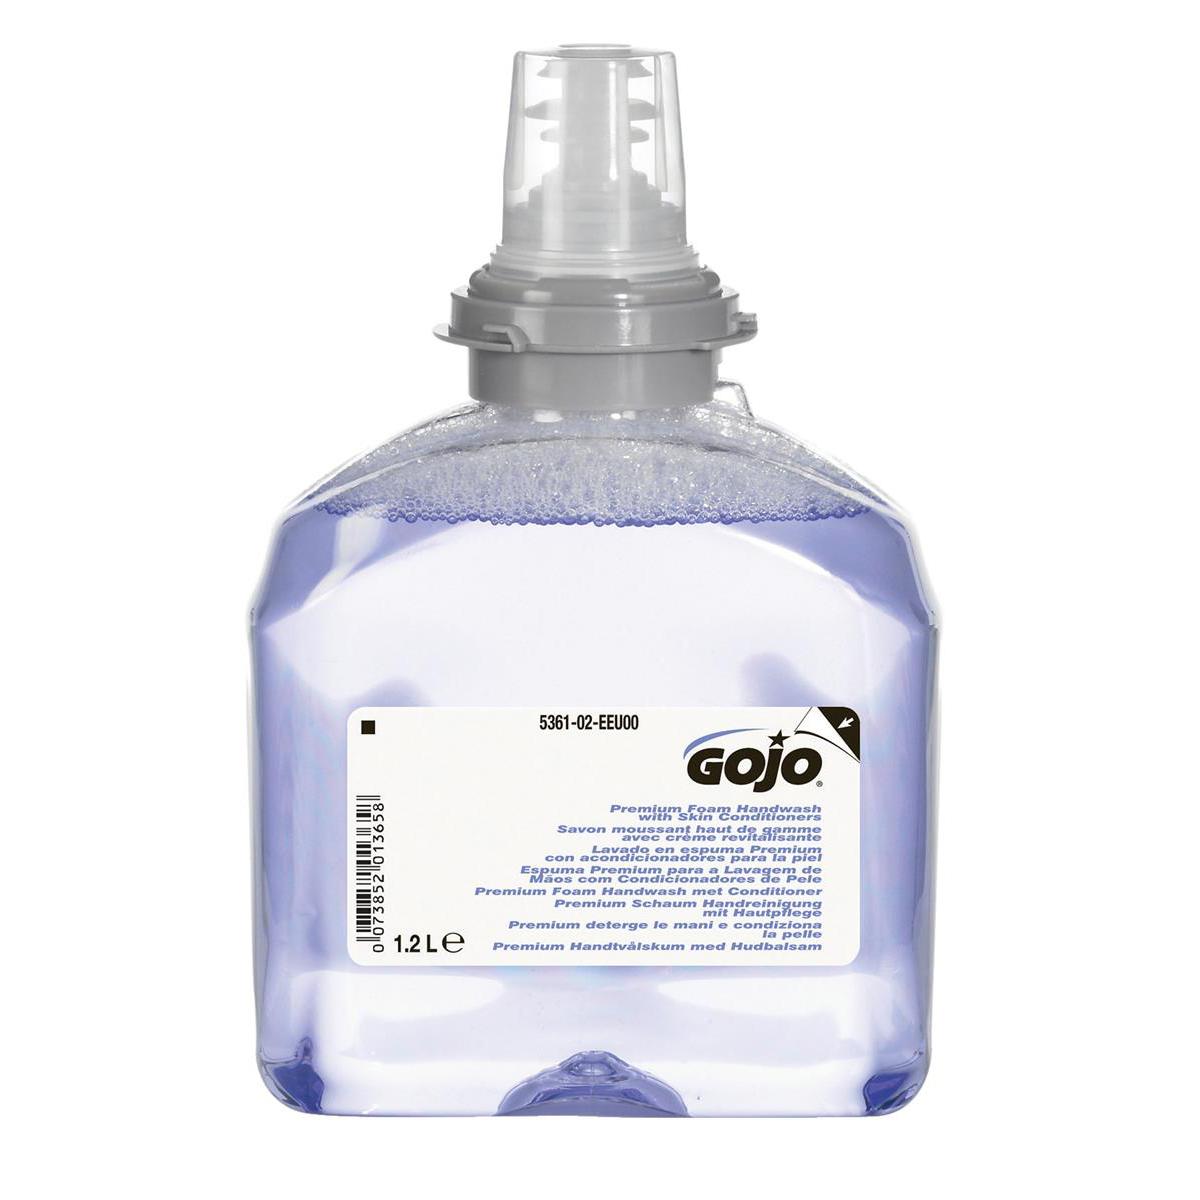 Gojo Foam Soap Hand Wash Refill with Conditioner for TFX Dispenser 1200ml Ref N06250 Pack 2